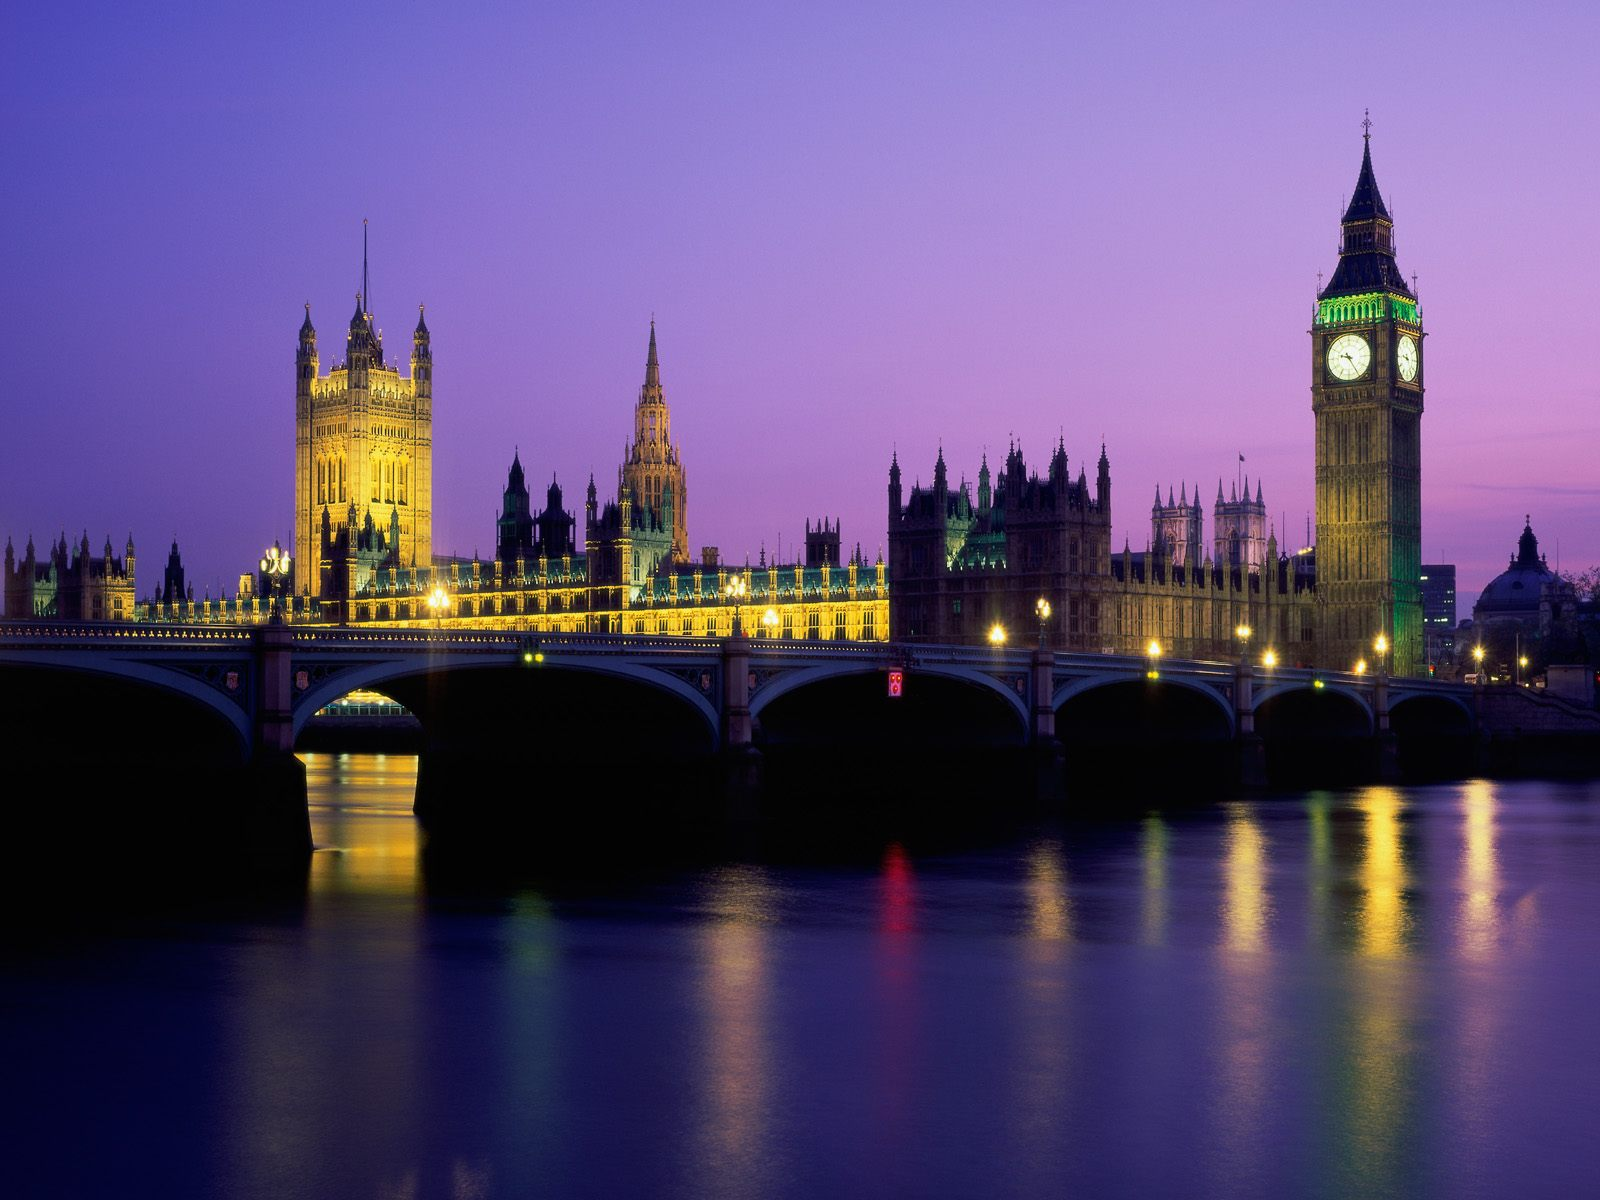 london wallpapers your selected image as your desktop wallpaper you ...